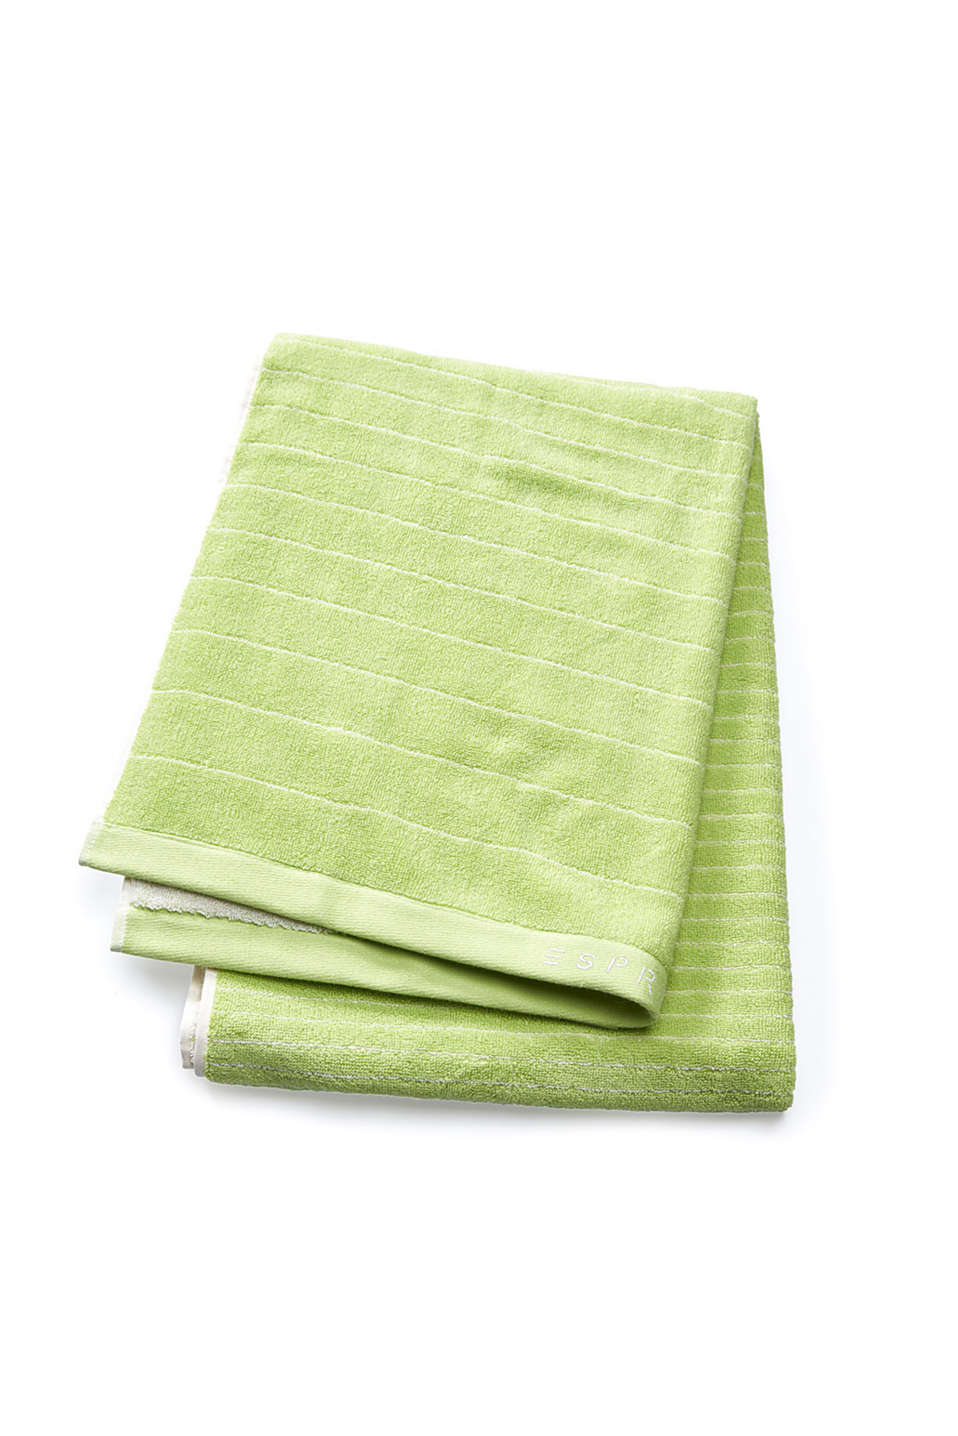 Esprit - 100% cotton towel